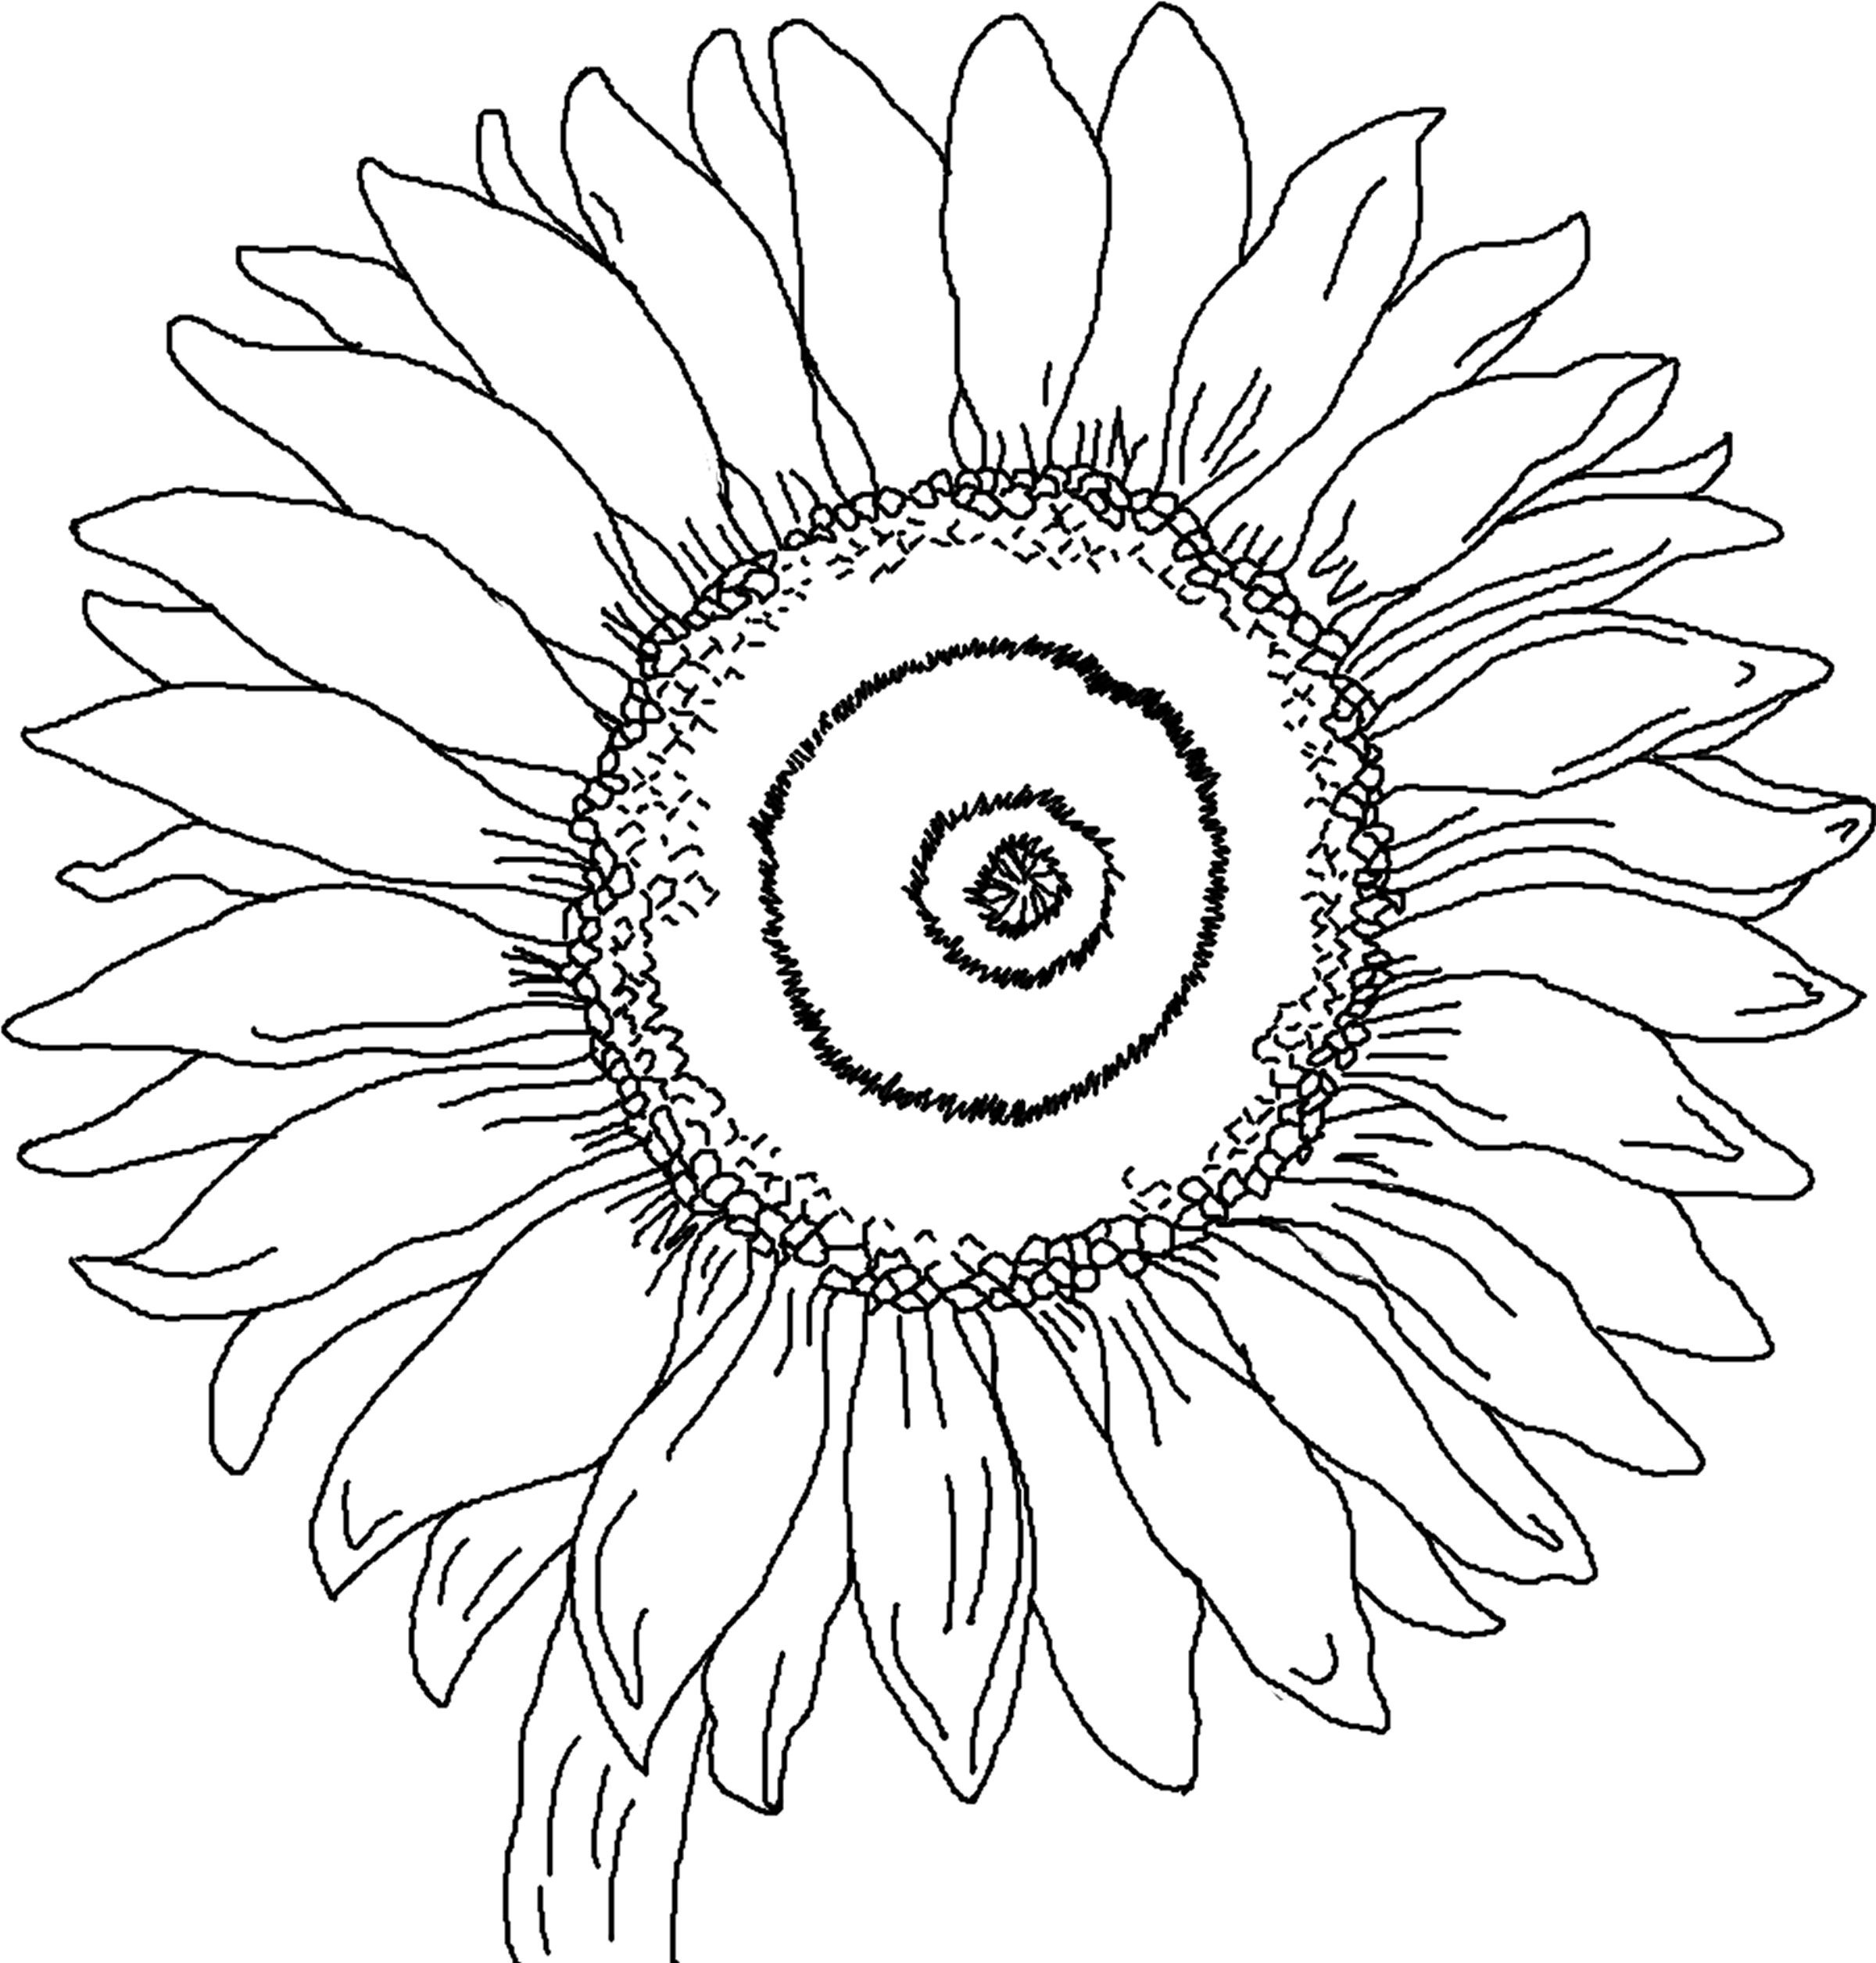 picture of a flower to color free printable roses coloring pages for kids of color a flower picture to